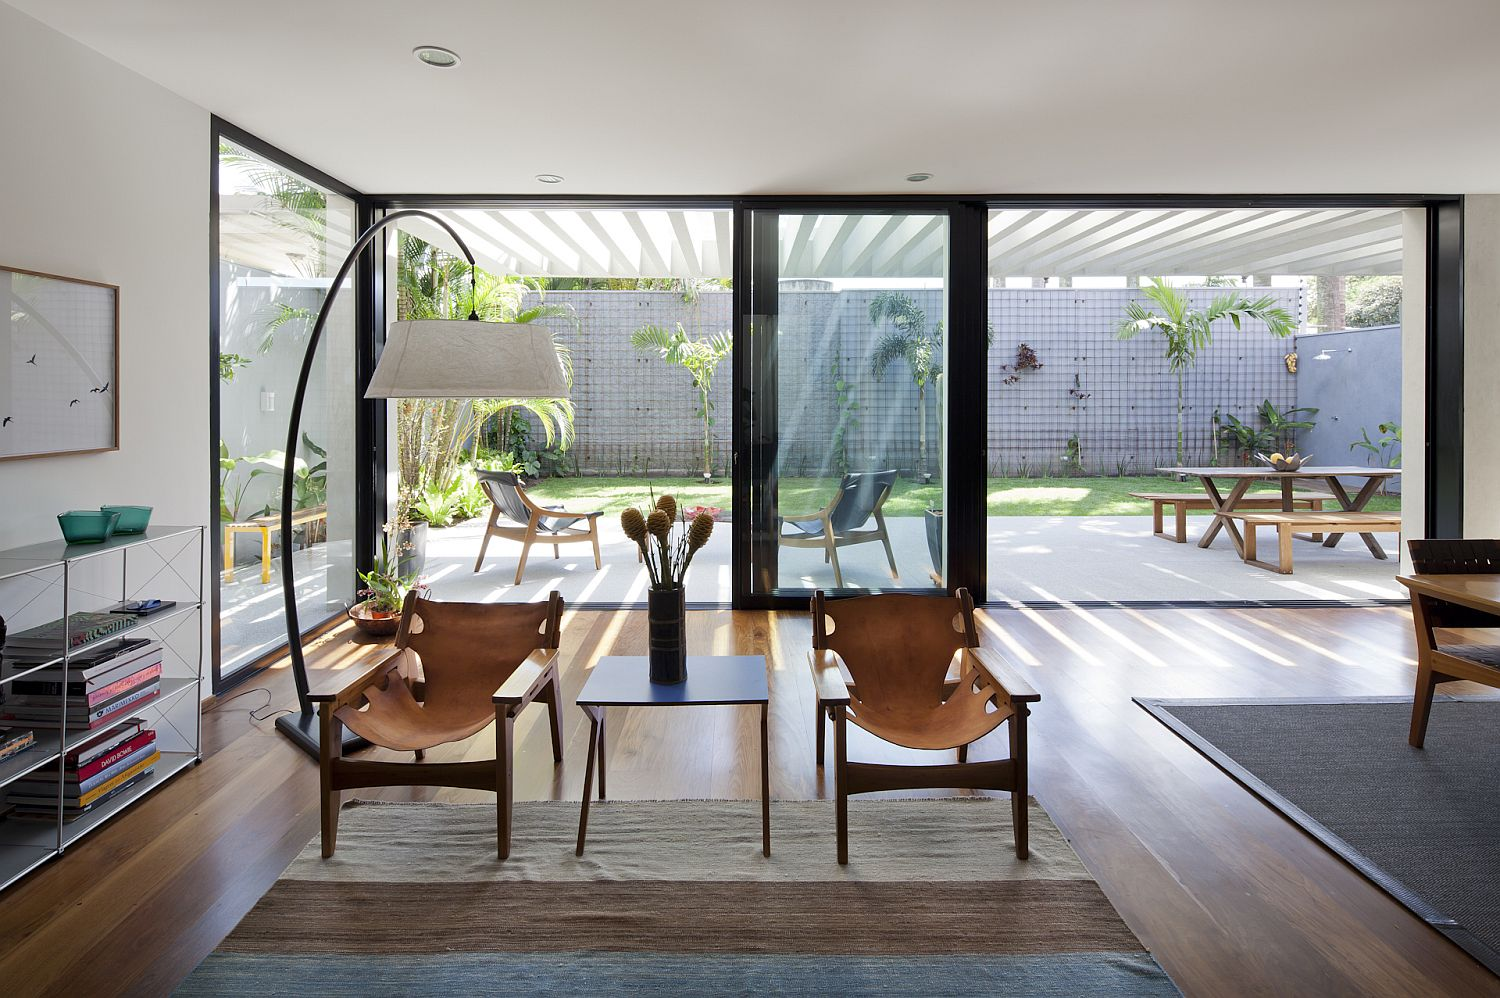 Dark framed glass doors connect the living area with the outdoor dining and backyard